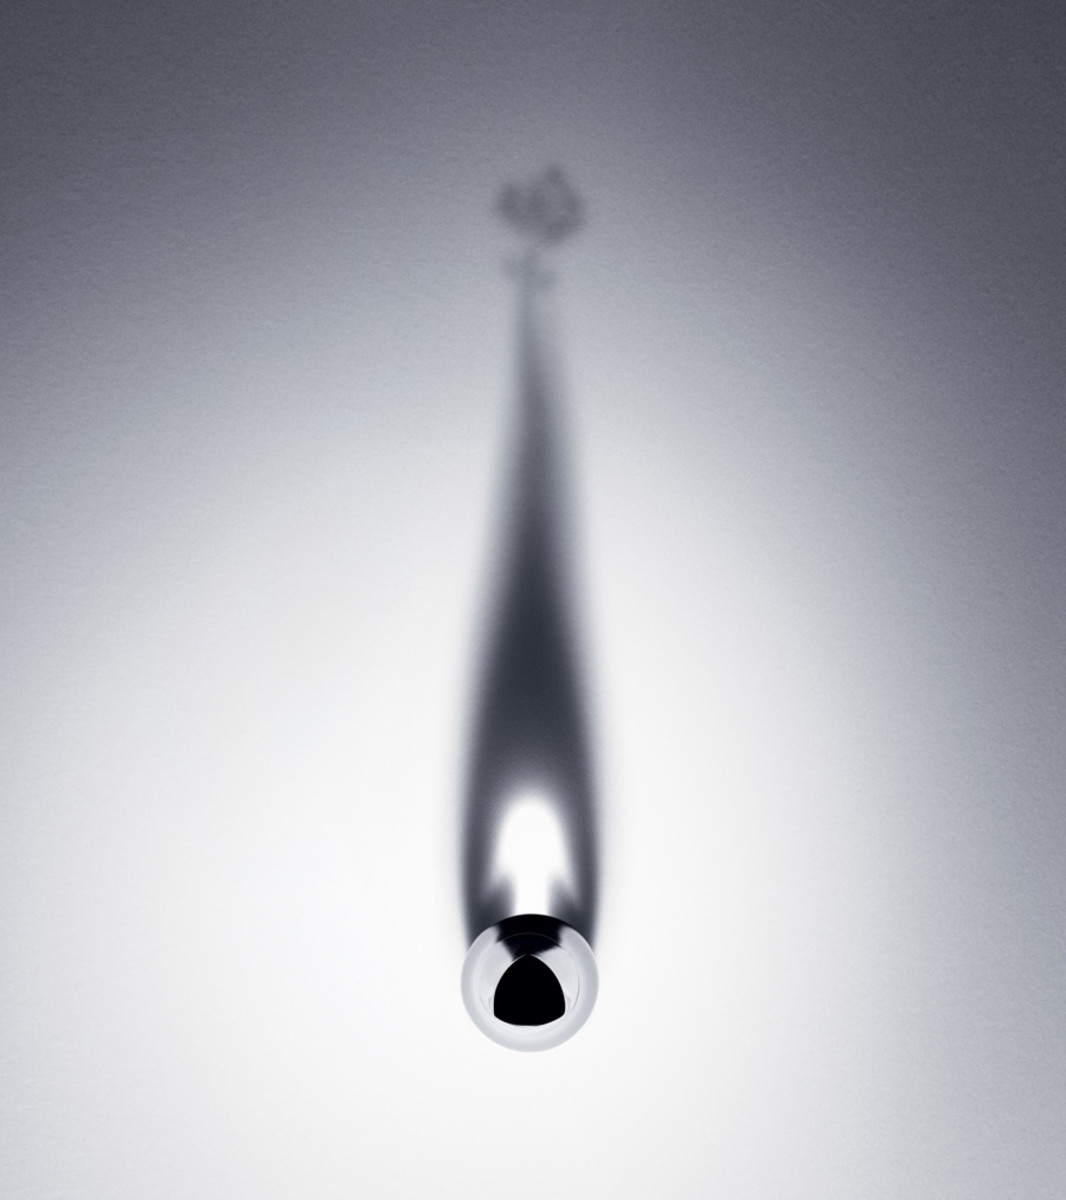 Lancome Grandiose mascara bottle shadow_how cool is this